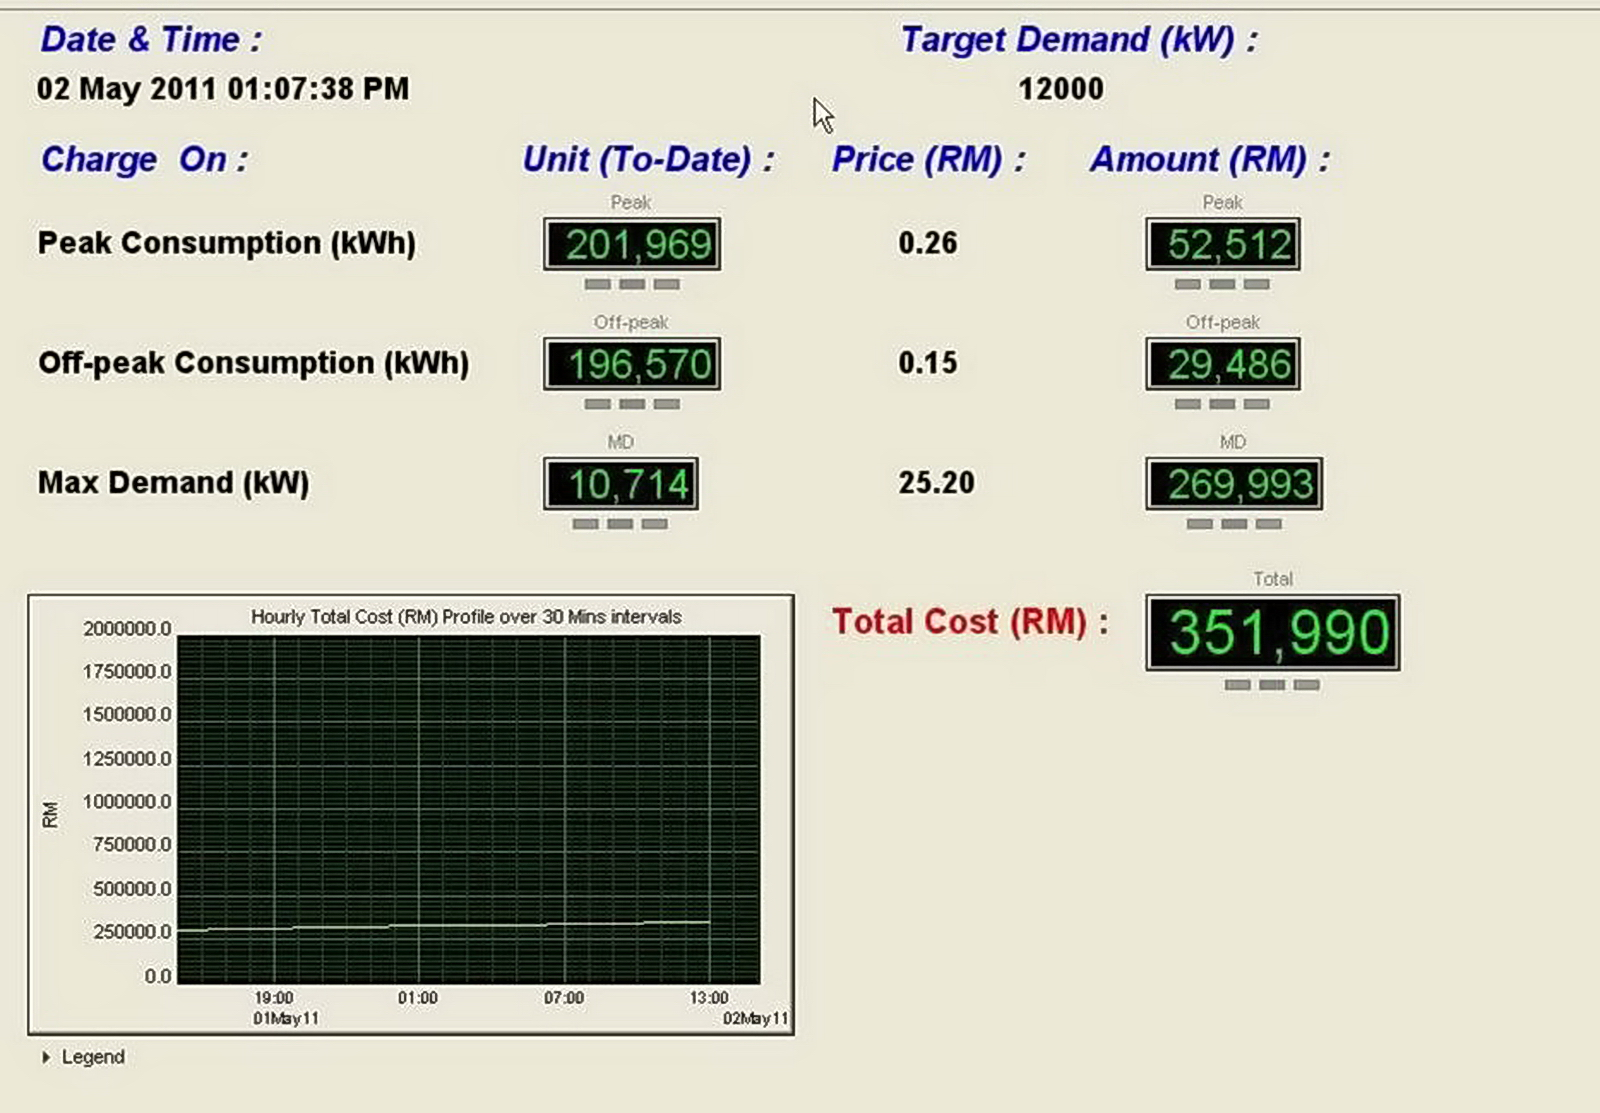 system generated real time costing for maximum demand